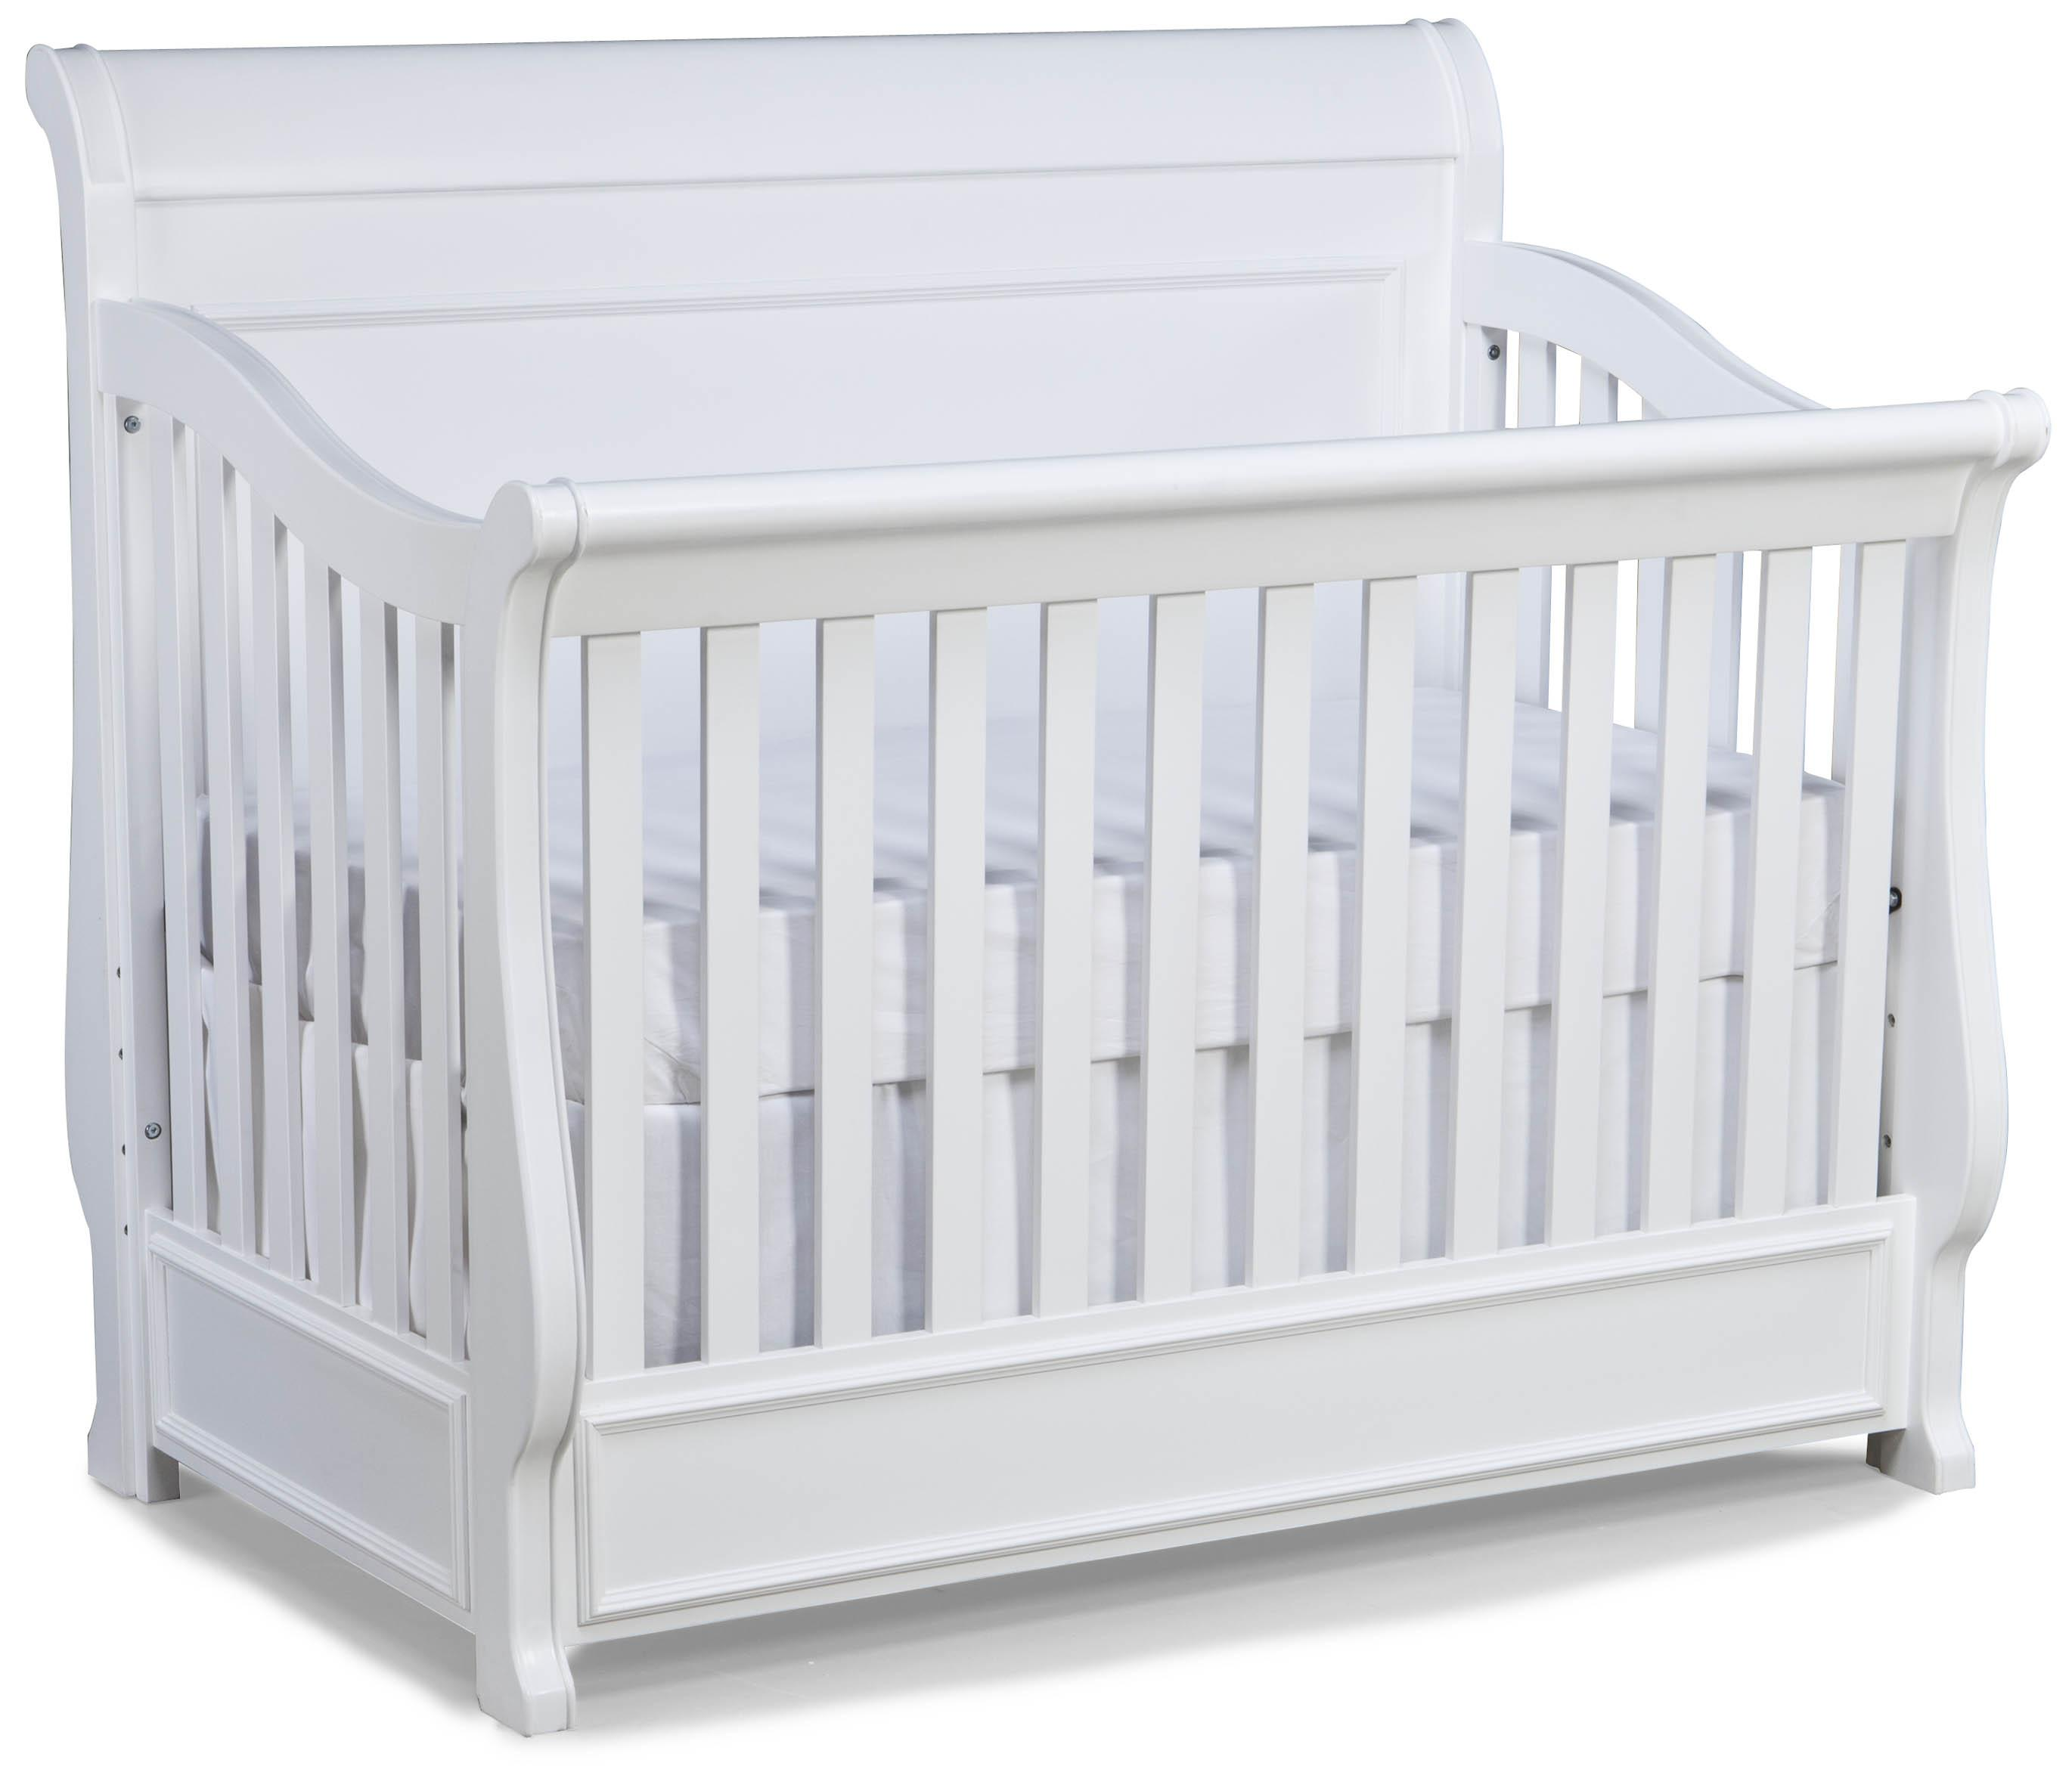 Legacy Classic Kids Madison Convertible Crib - Item Number: 2830-8900